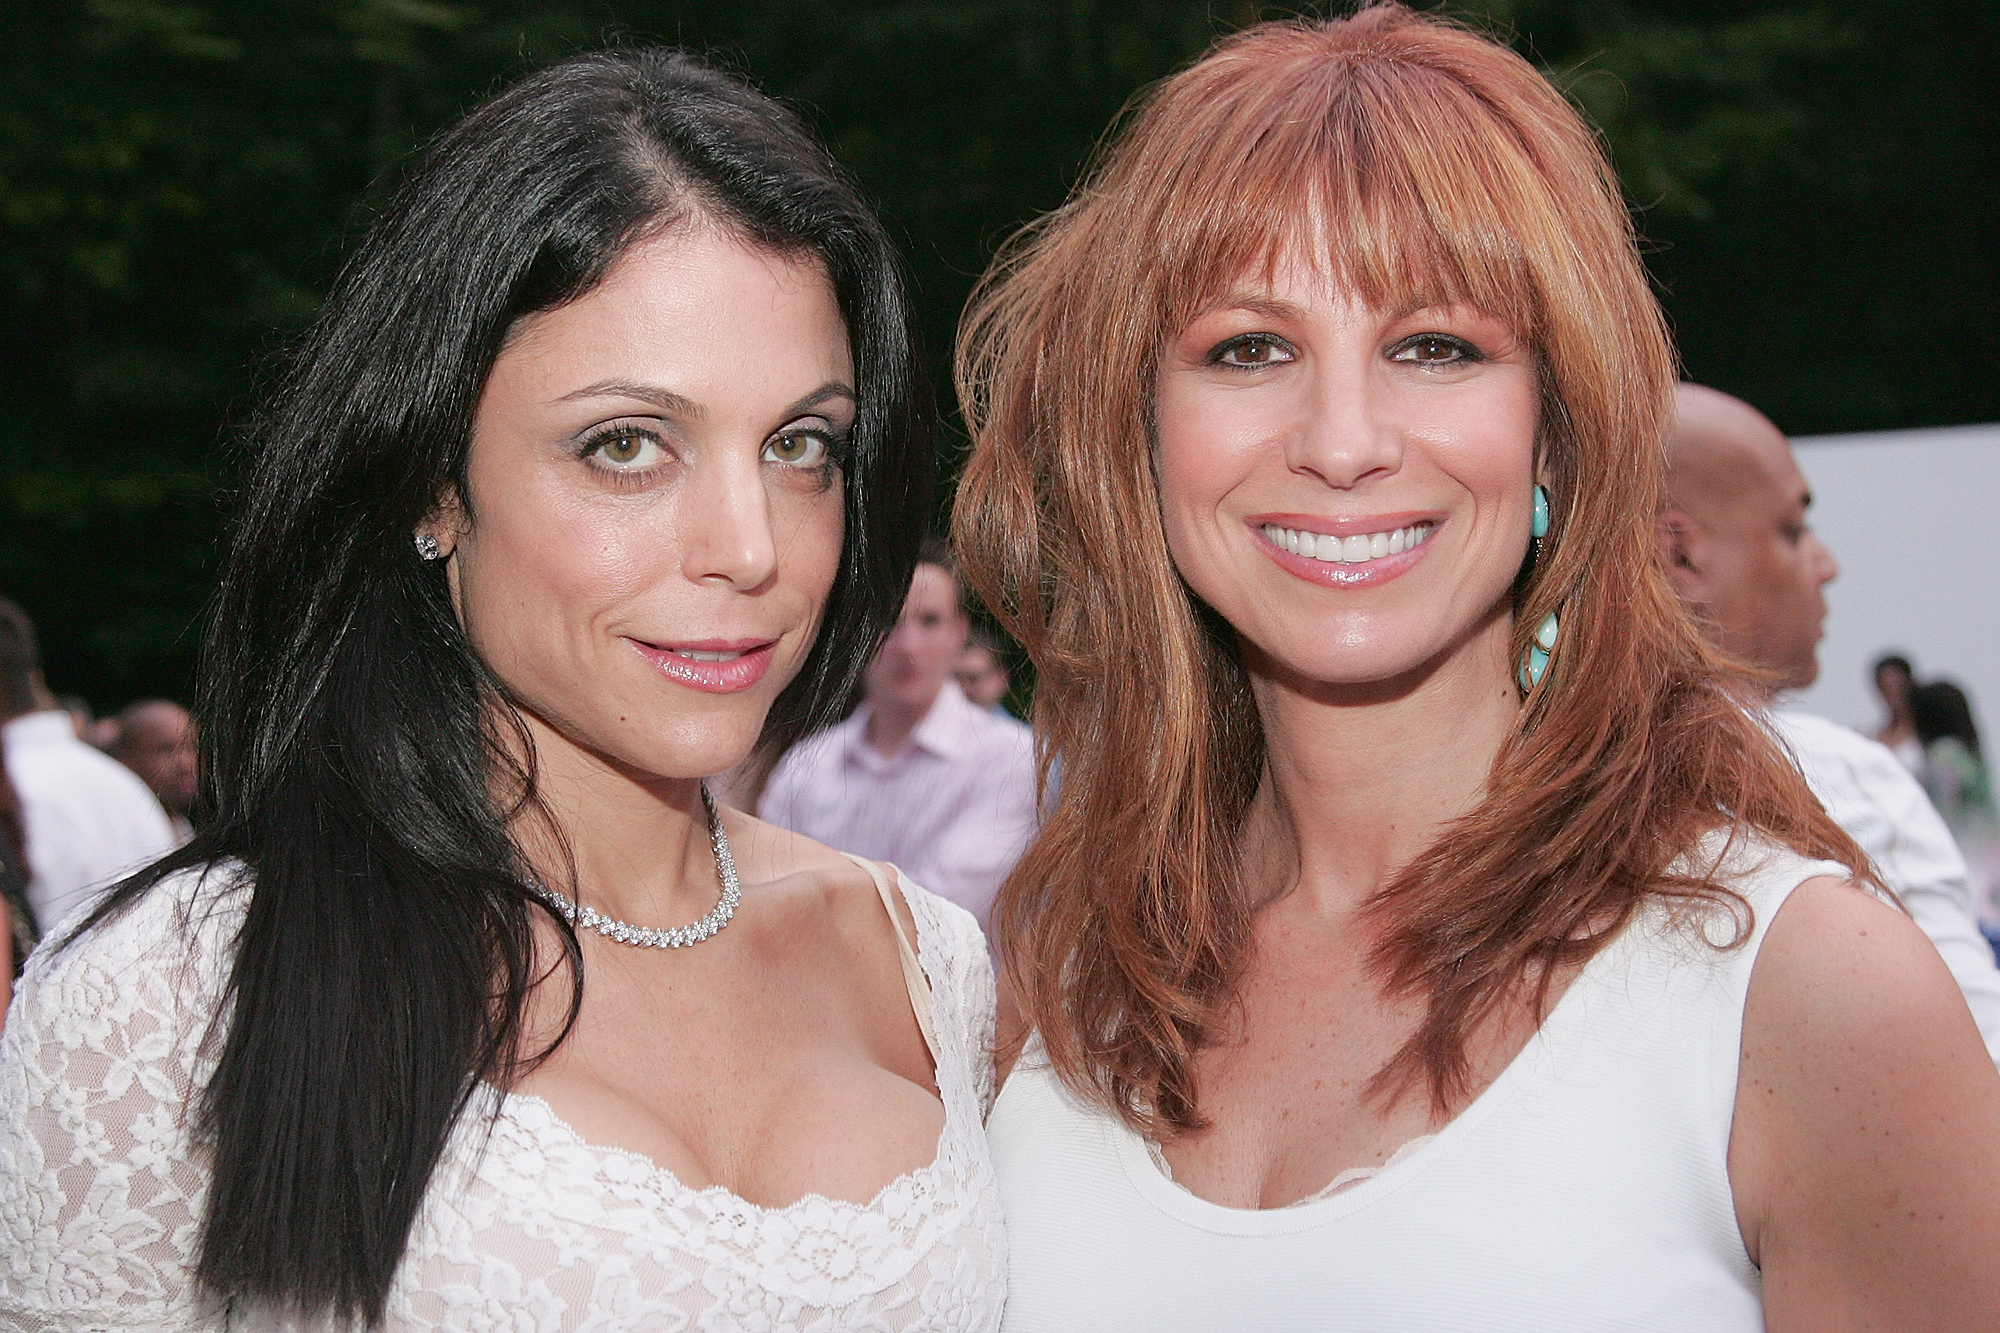 Bobby and Jill Zarin's Annual Fourth of July Party